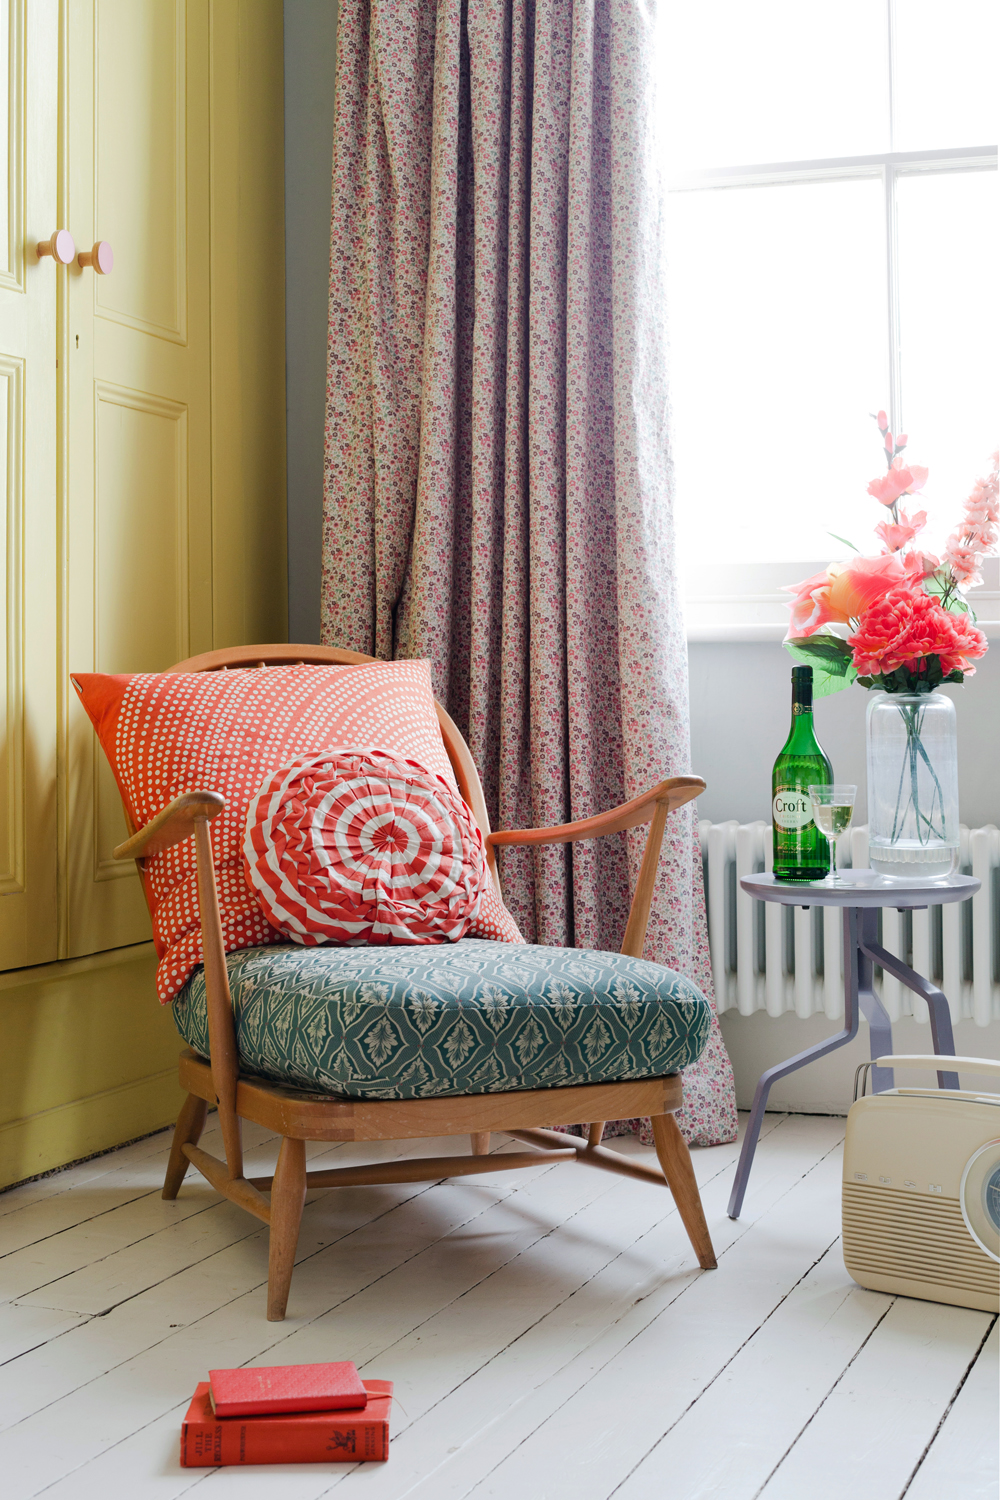 sherry furniture. Croft Spot In Sunny Room Sherry Furniture S